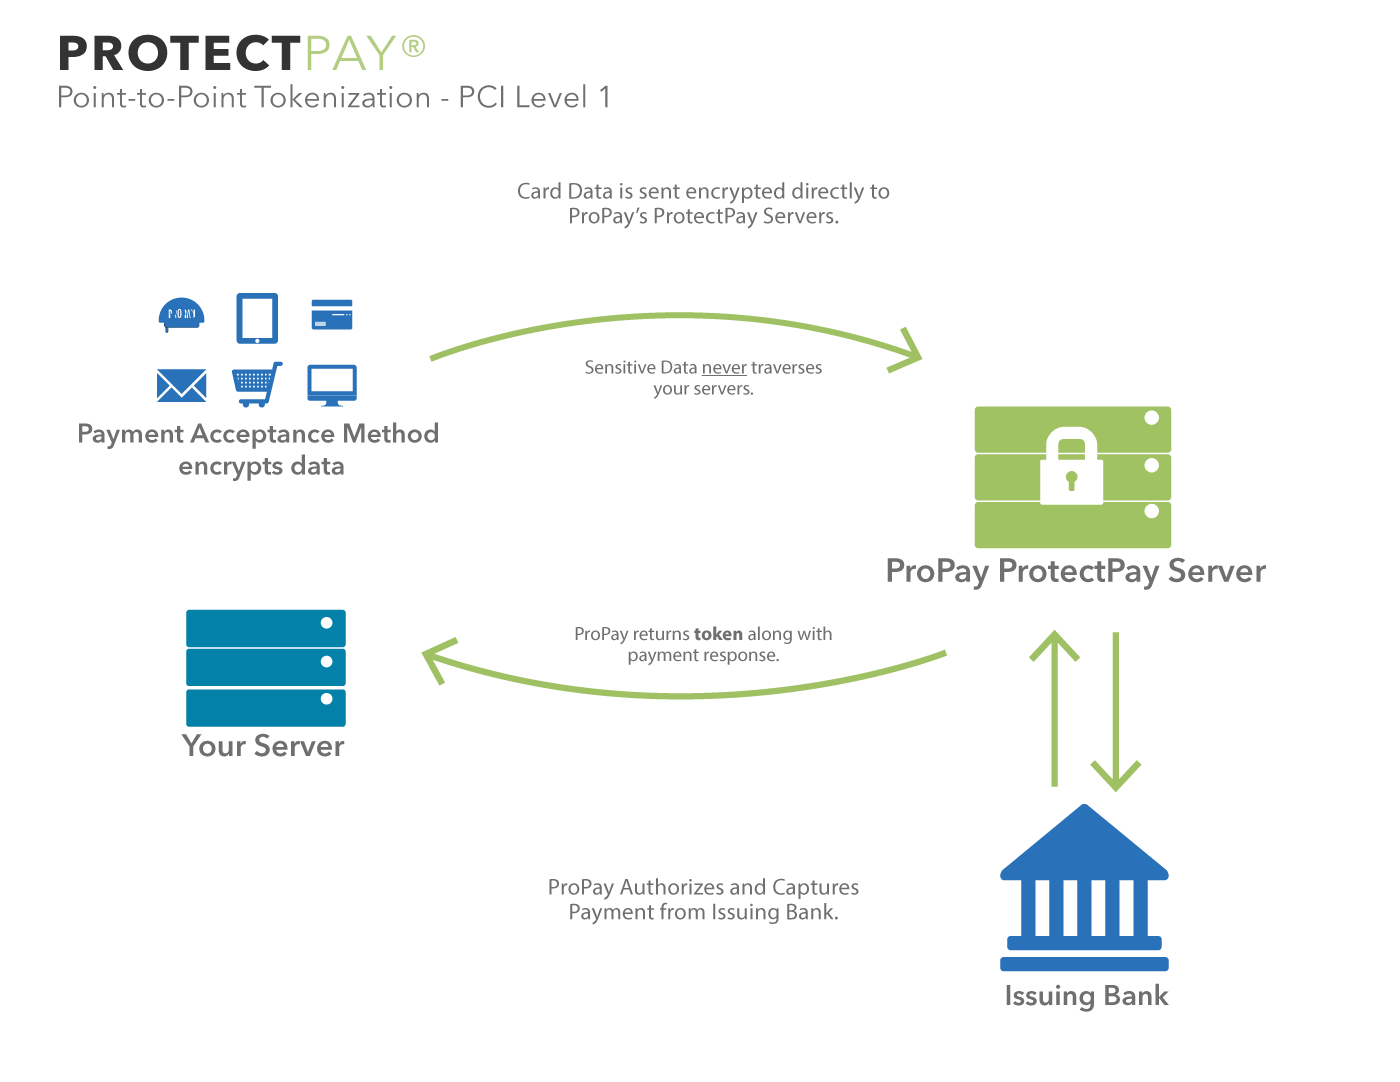 Protectpay tokenization payment security solutions propay propay also supports ecommerce merchants through its proprietary secure payment integration spi and payment management interface pmi solutions pooptronica